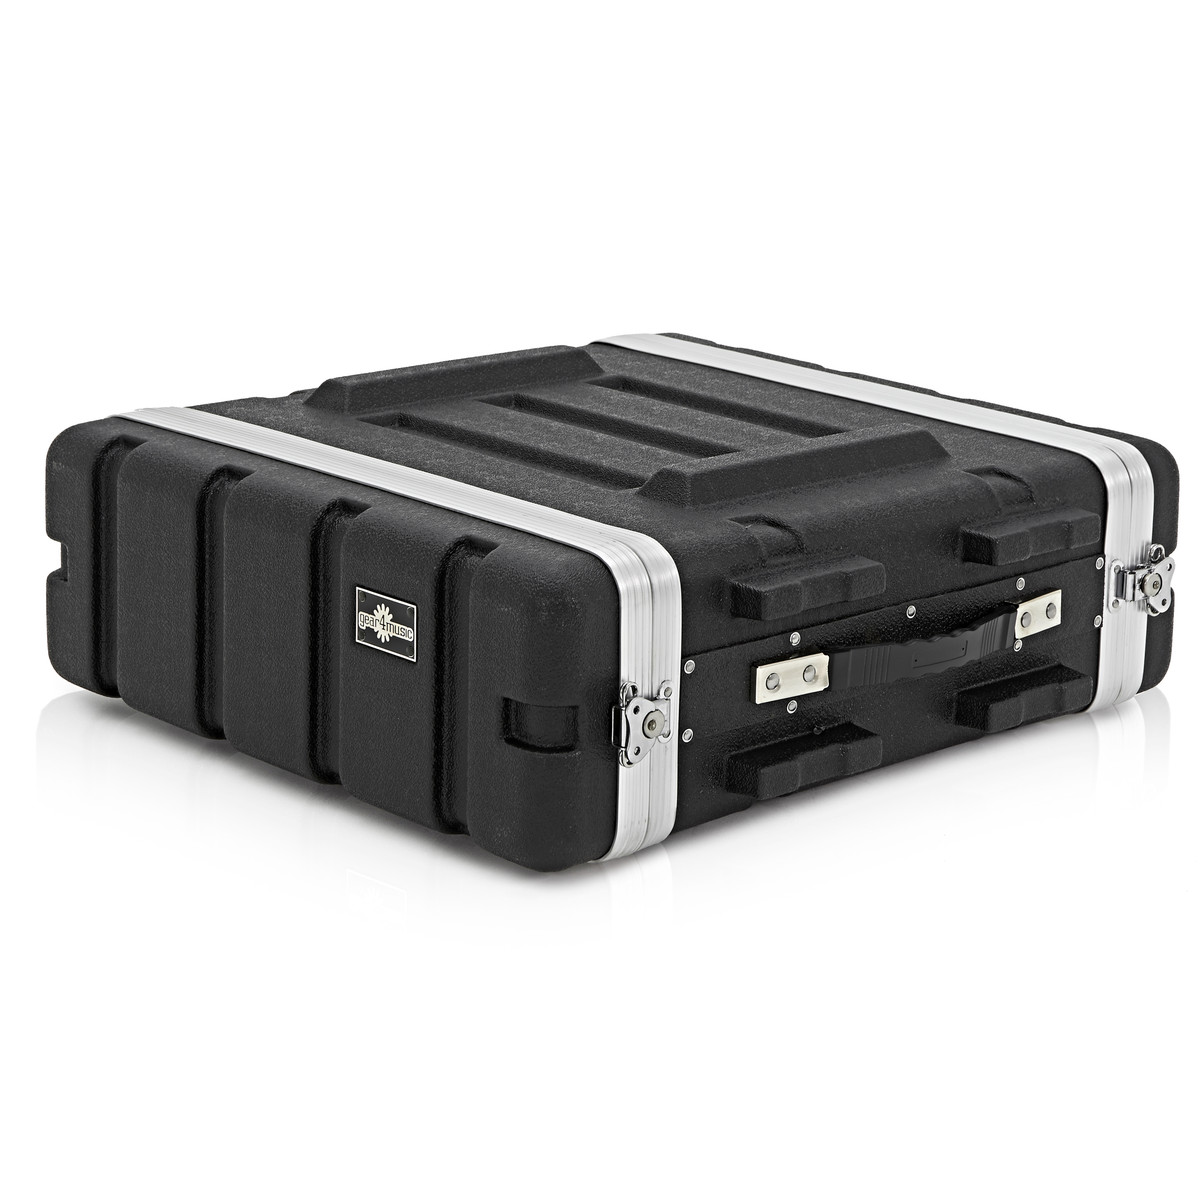 "Image of 3U 19"" Rack Case by Gear4music"